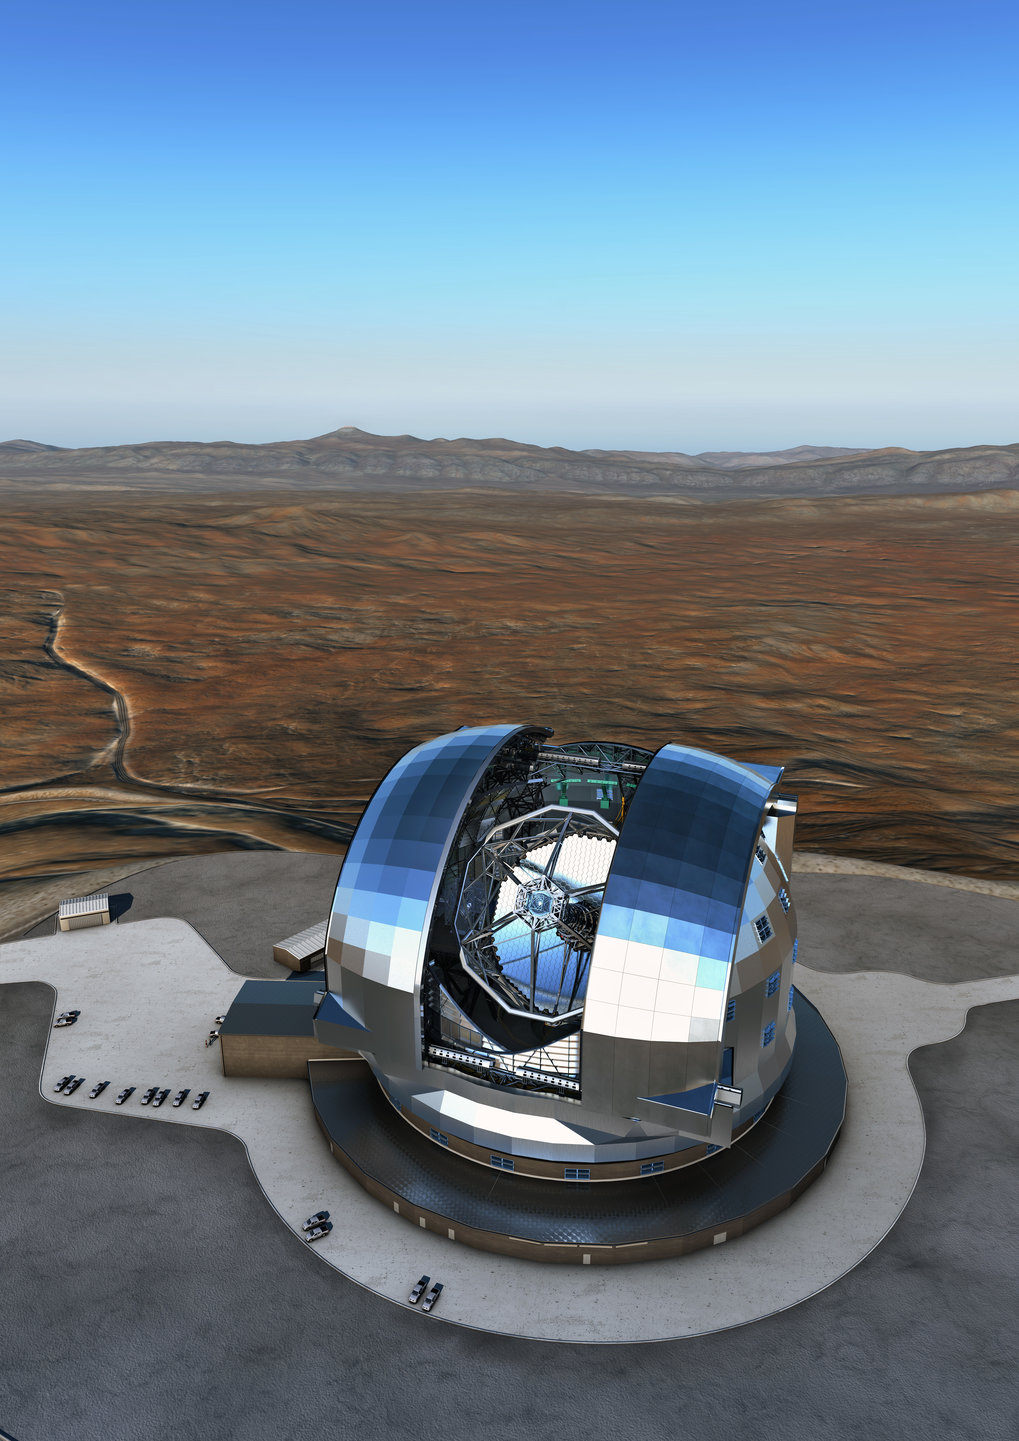 <p>An artist's rendering of the European Extremely Large Telescope (E-ELT) in the Chilean Atacama Desert. Construction started in 2014 and first light is targeted for 2024.</p>